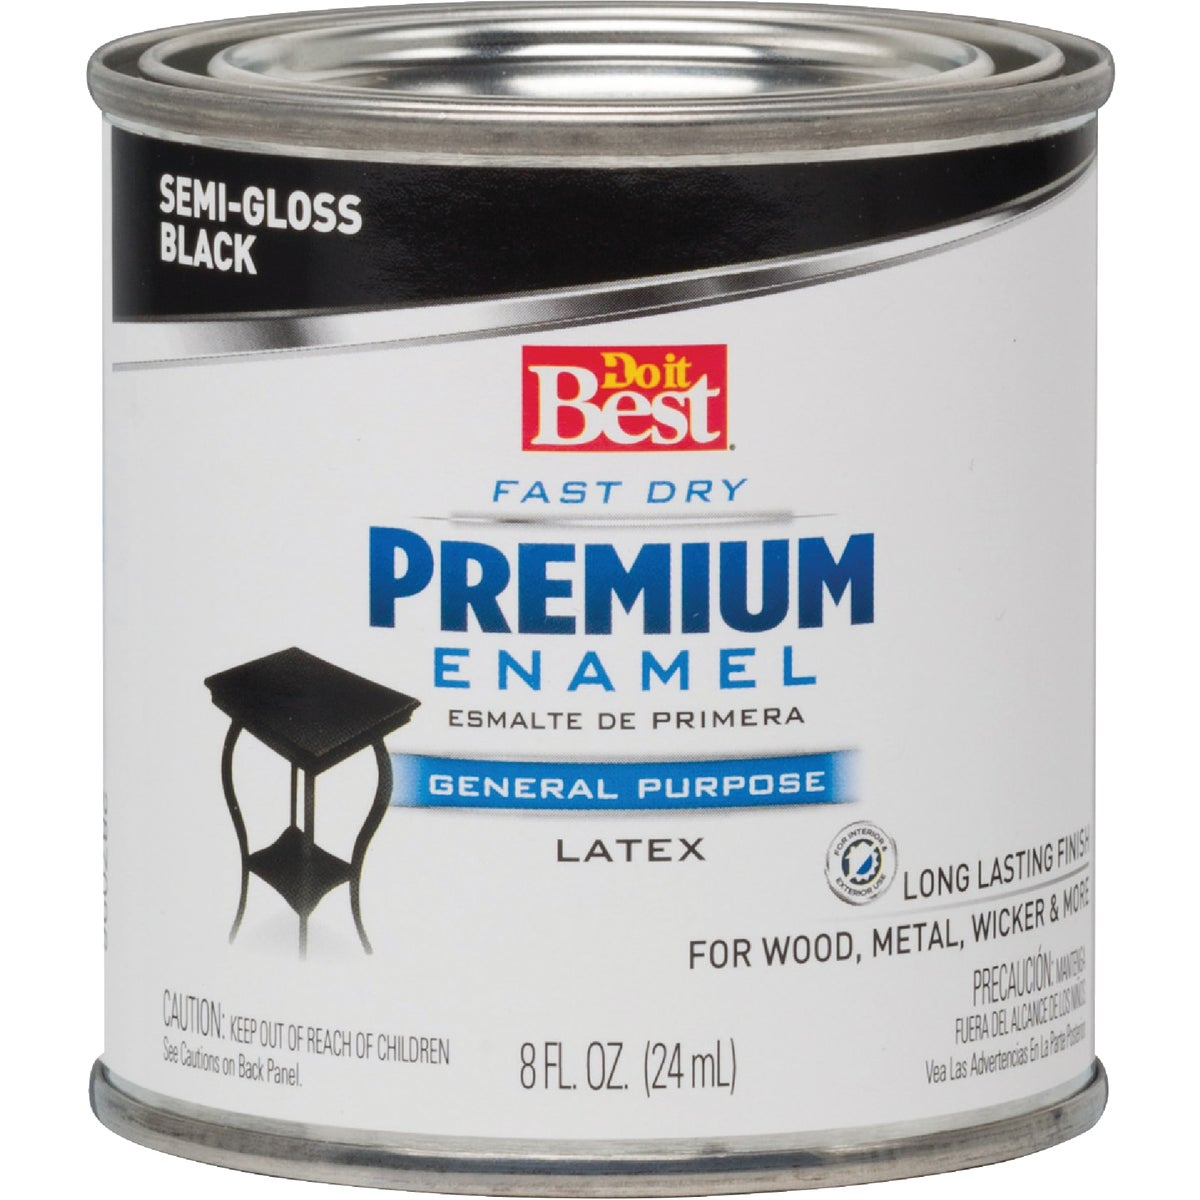 S/G BLACK LATEX ENAMEL - 203341D by Rustoleum